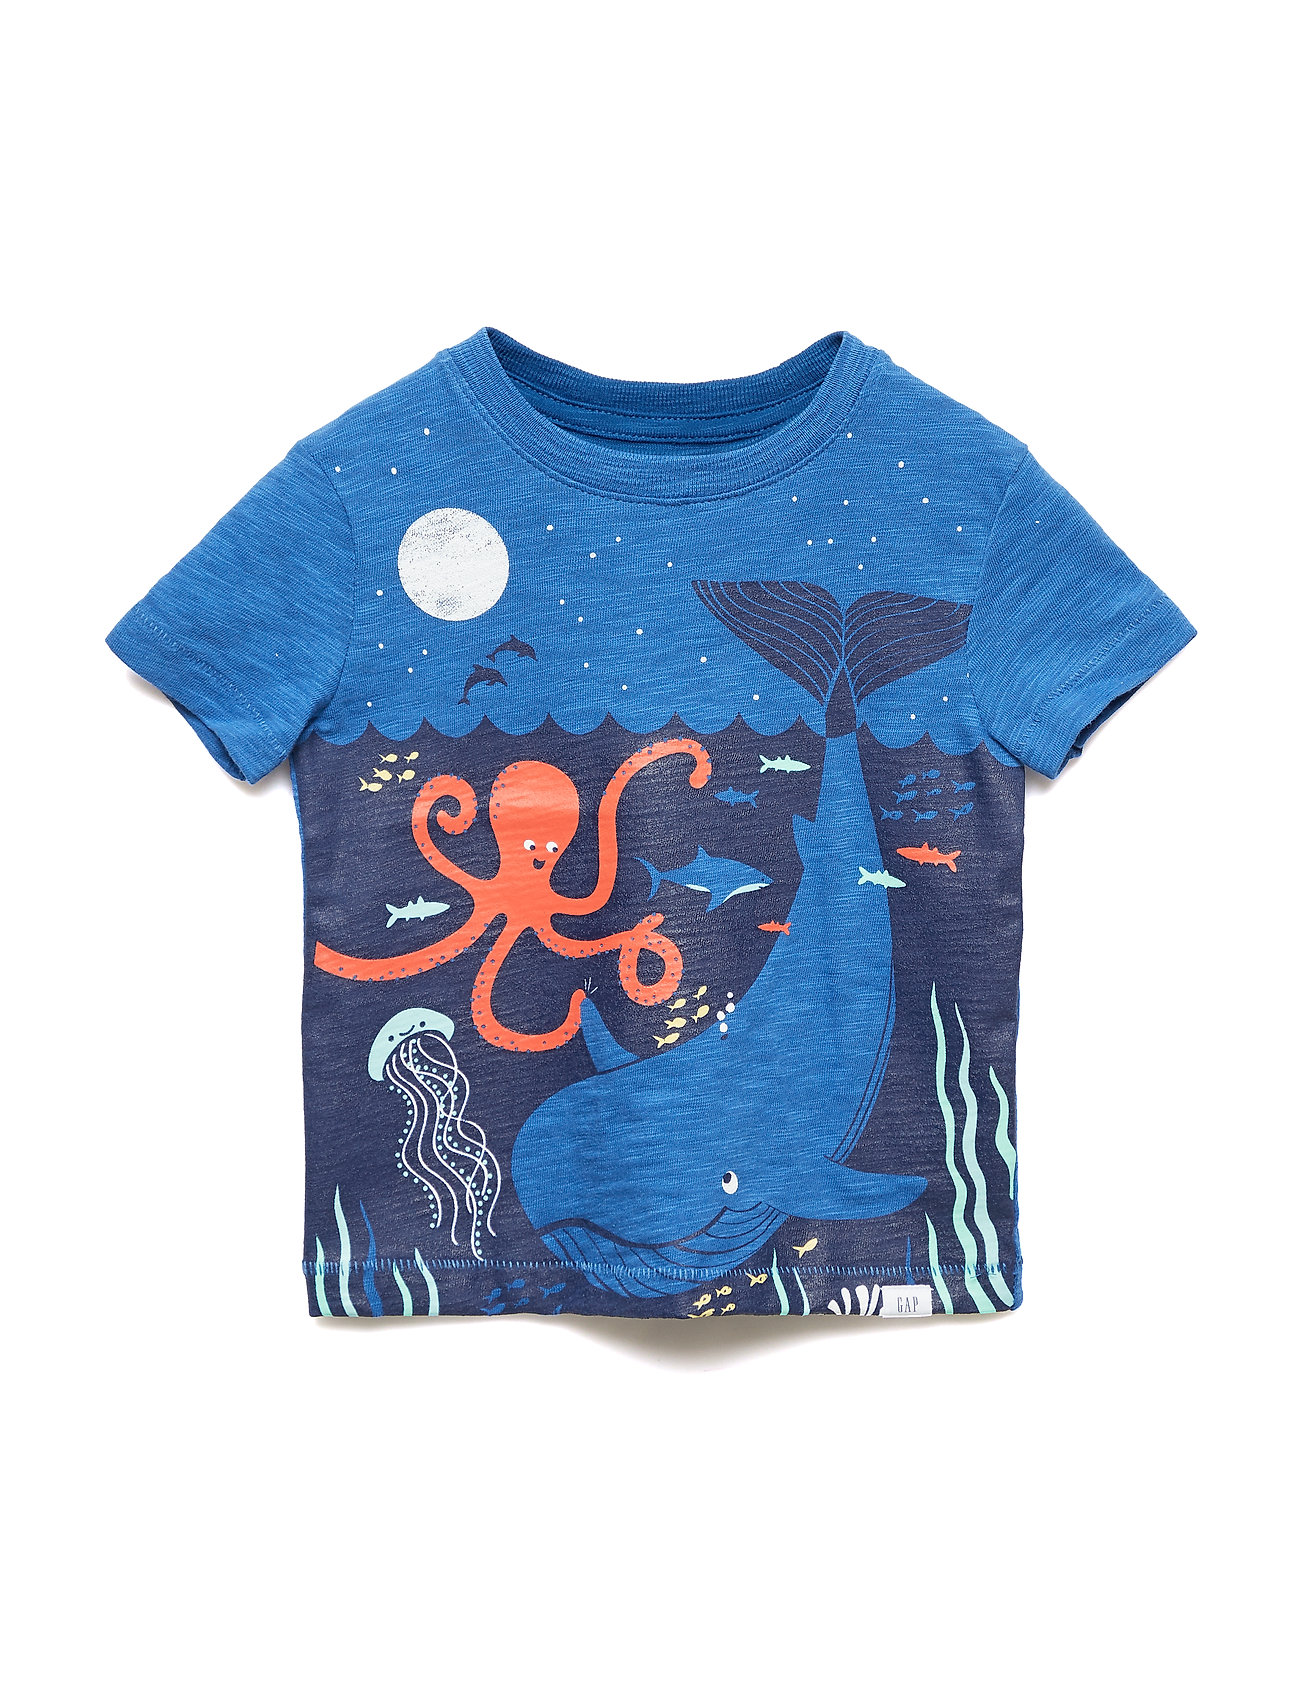 GAP Toddler Graphic Short Sleeve T-Shirt - BALTIC BLUE